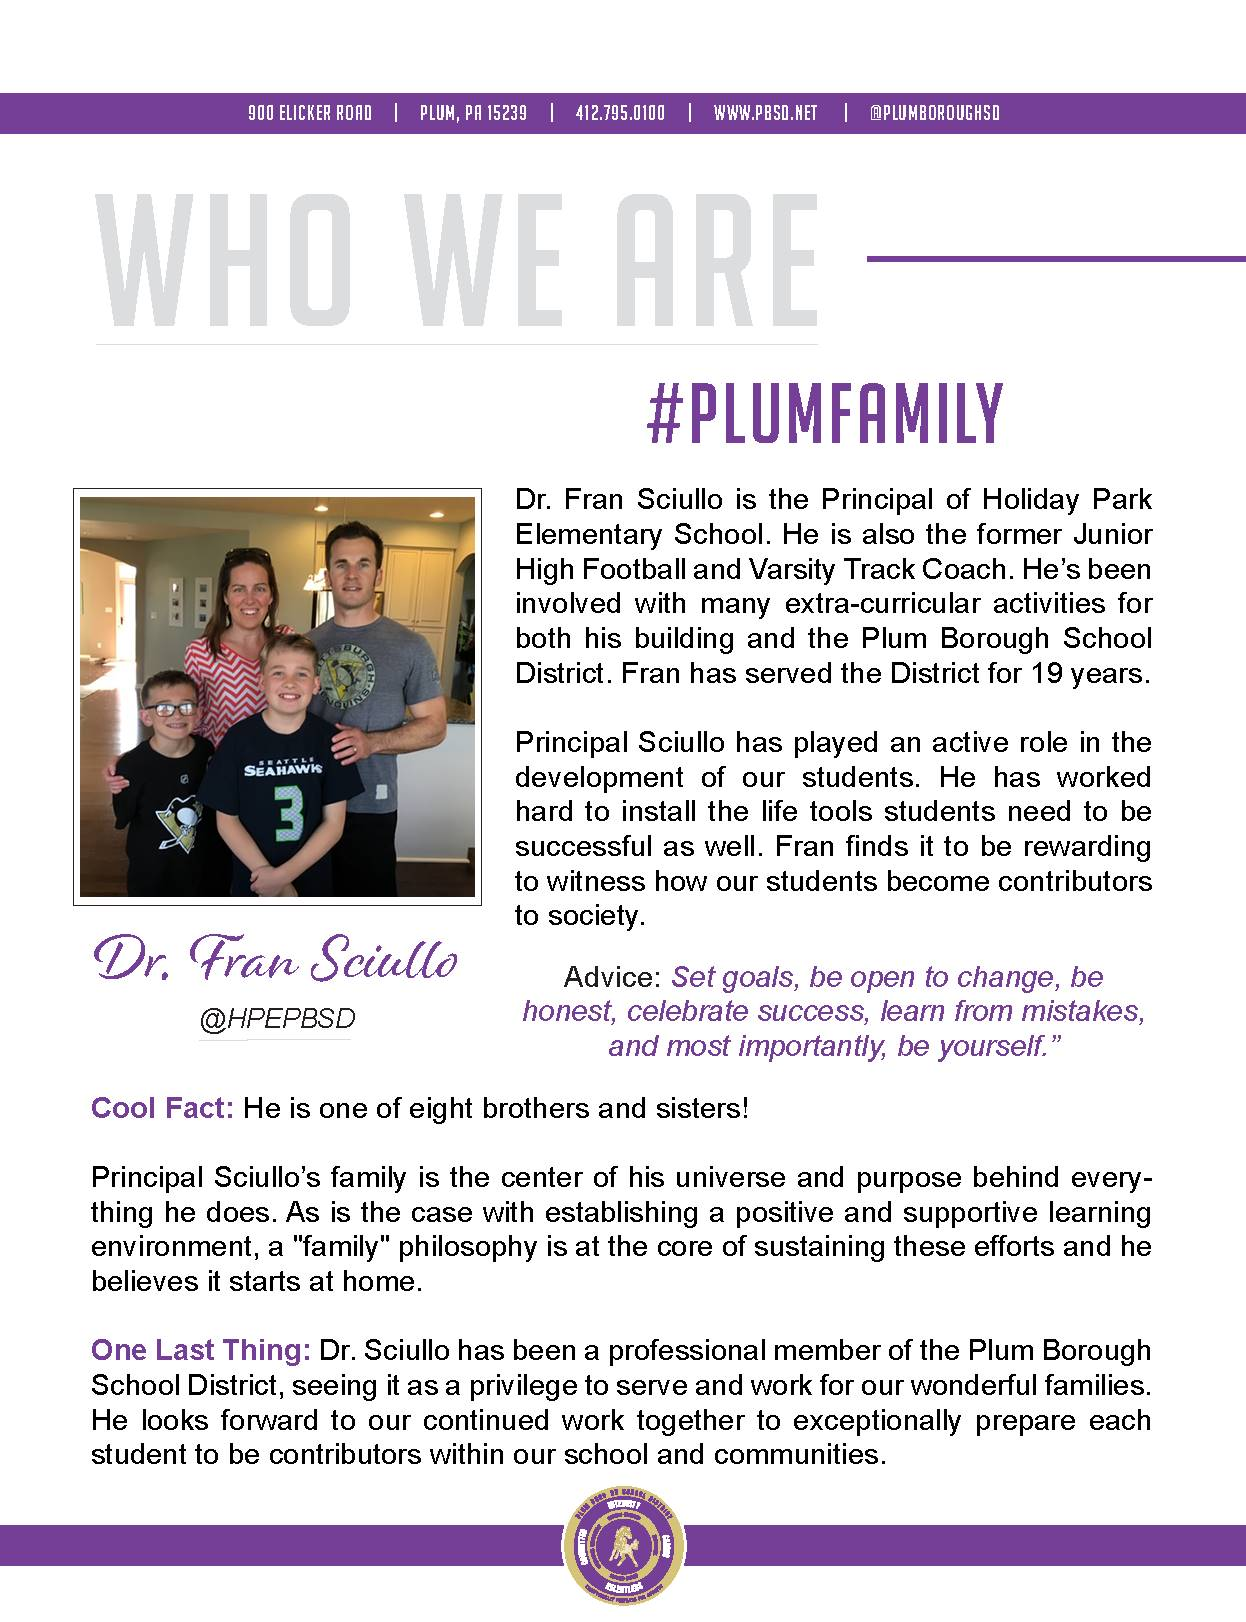 Who We Are Wednesday features Dr. Fran Sciullo.